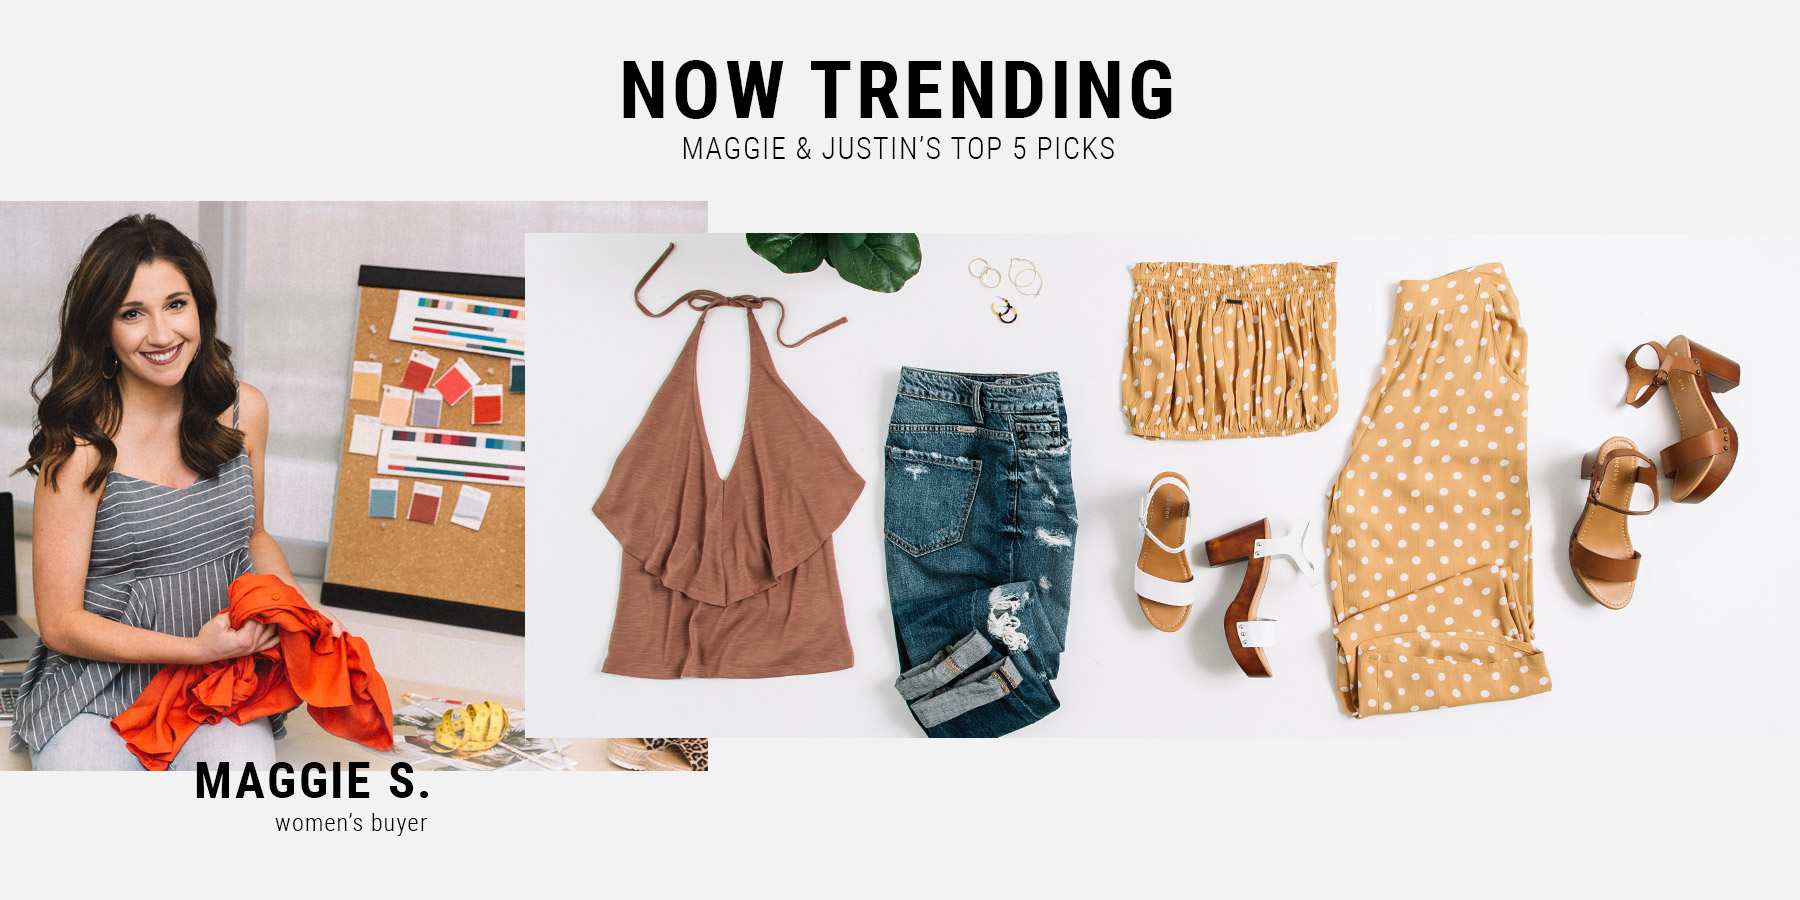 Now Trending - Maggie and Justin's Top 5 Picks